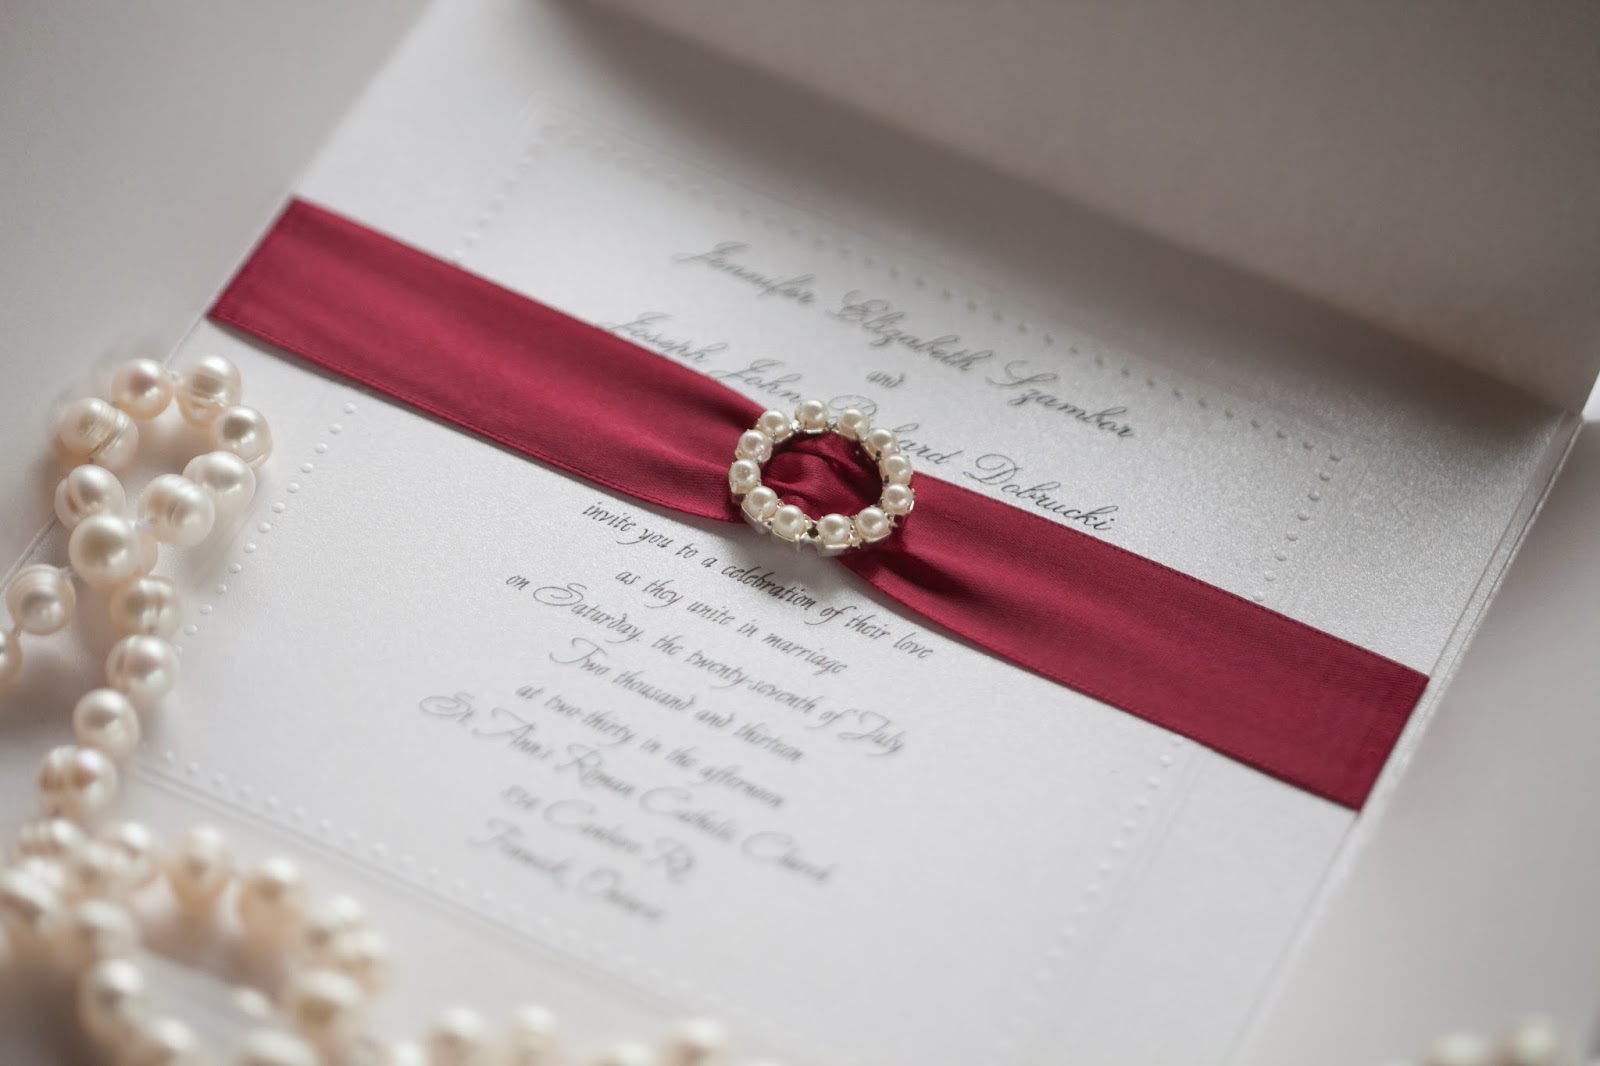 niagara wedding planner a divine affair